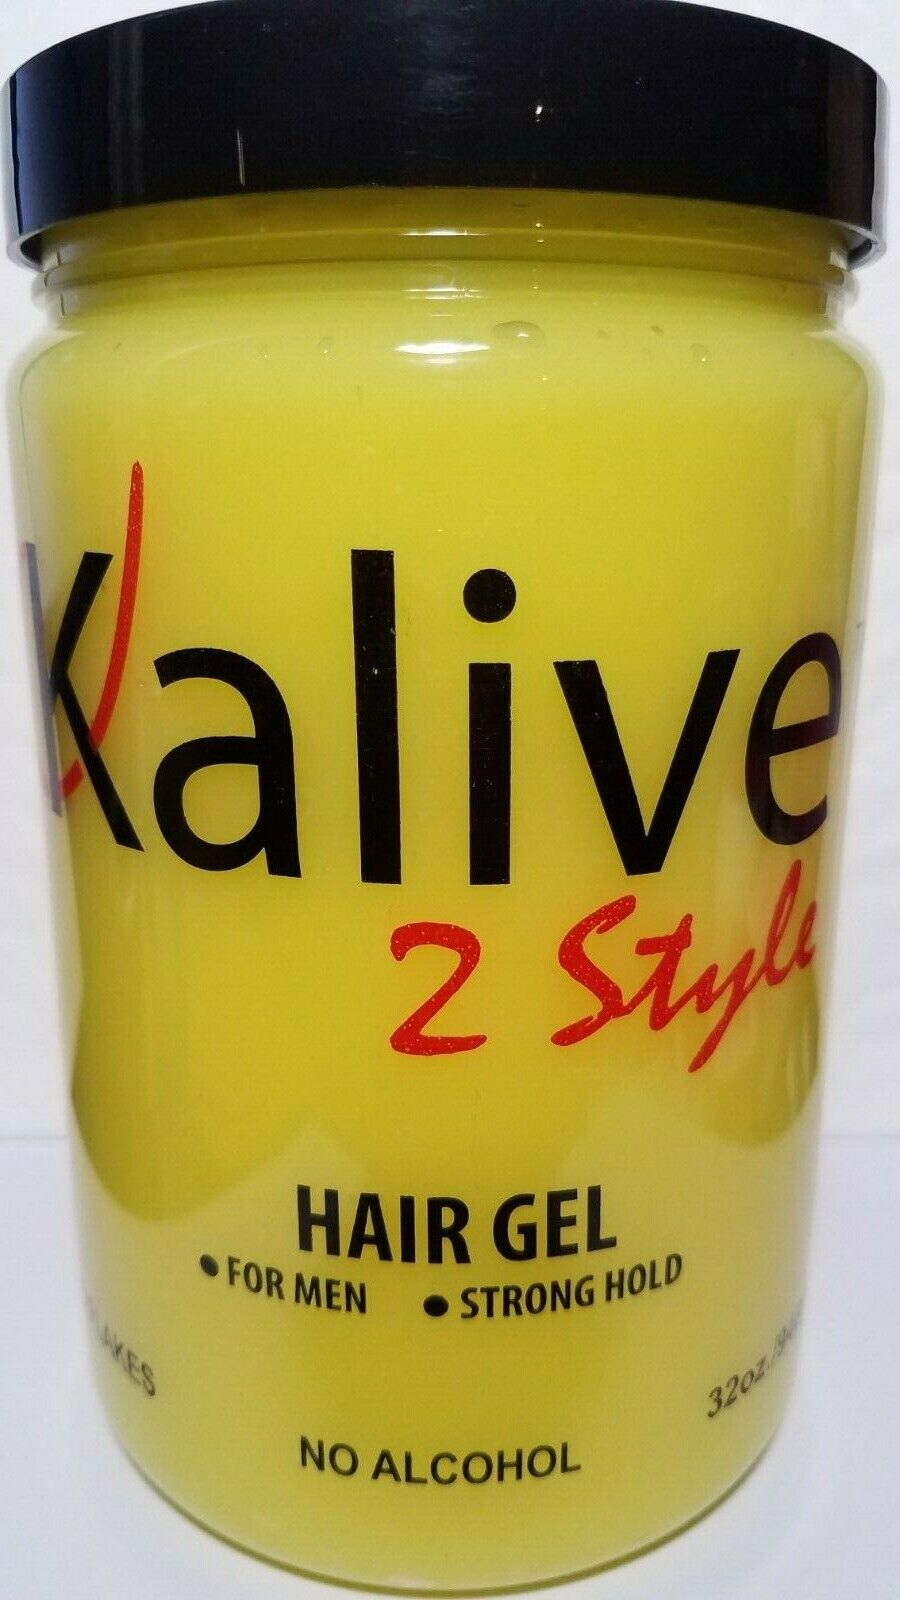 KALIVE 2 STYLE HAIR GEL FOR MEN STRONG HOLD NO FLAKES 32 OZ